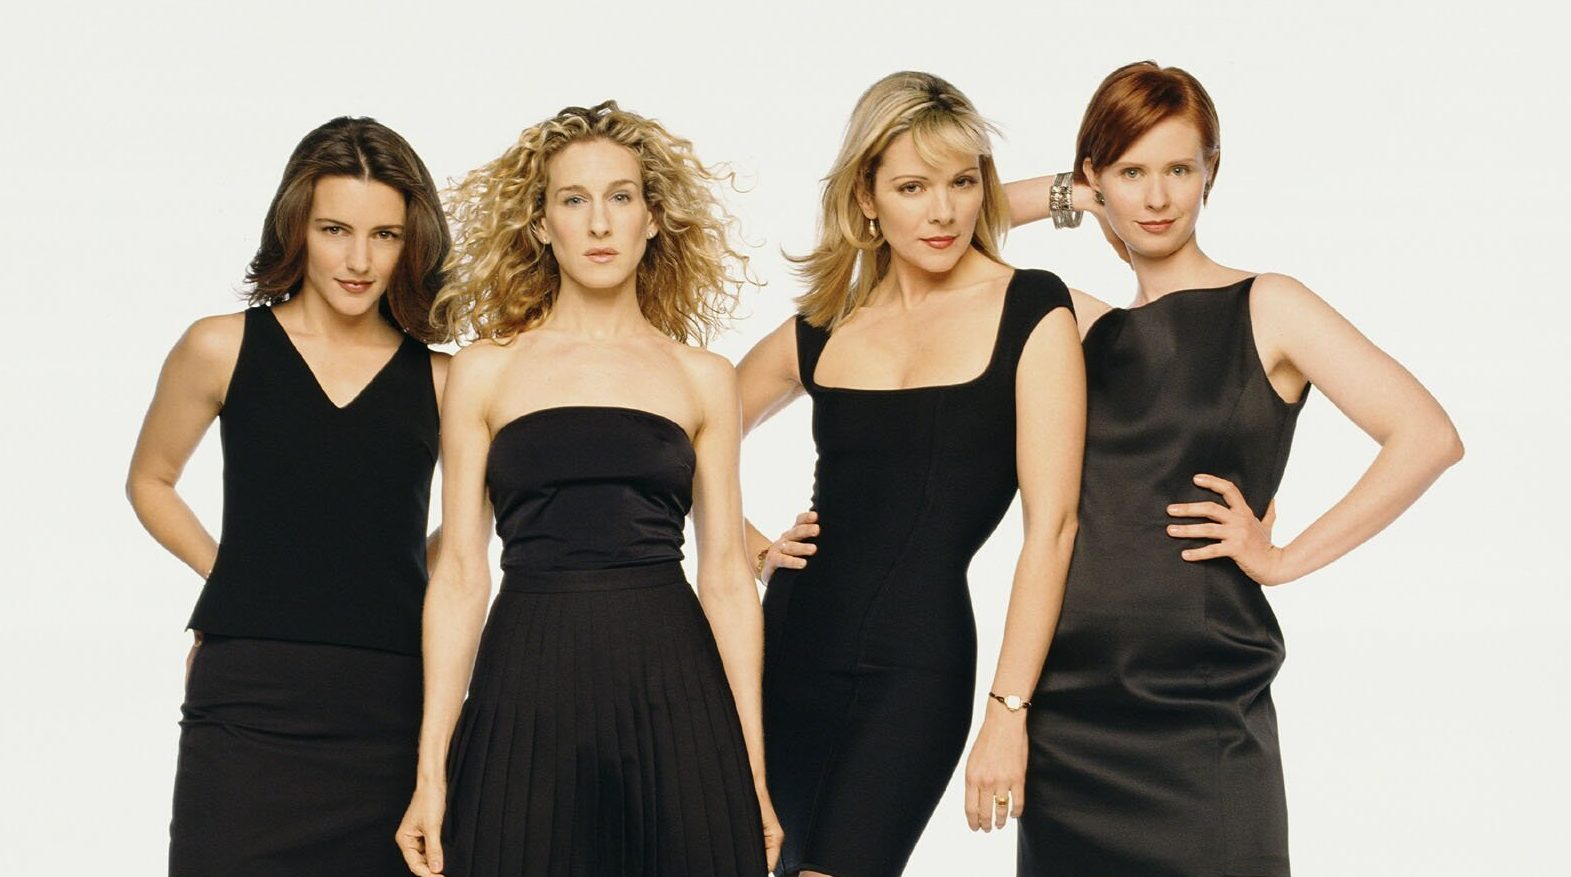 Speaking, characters on sex and the city